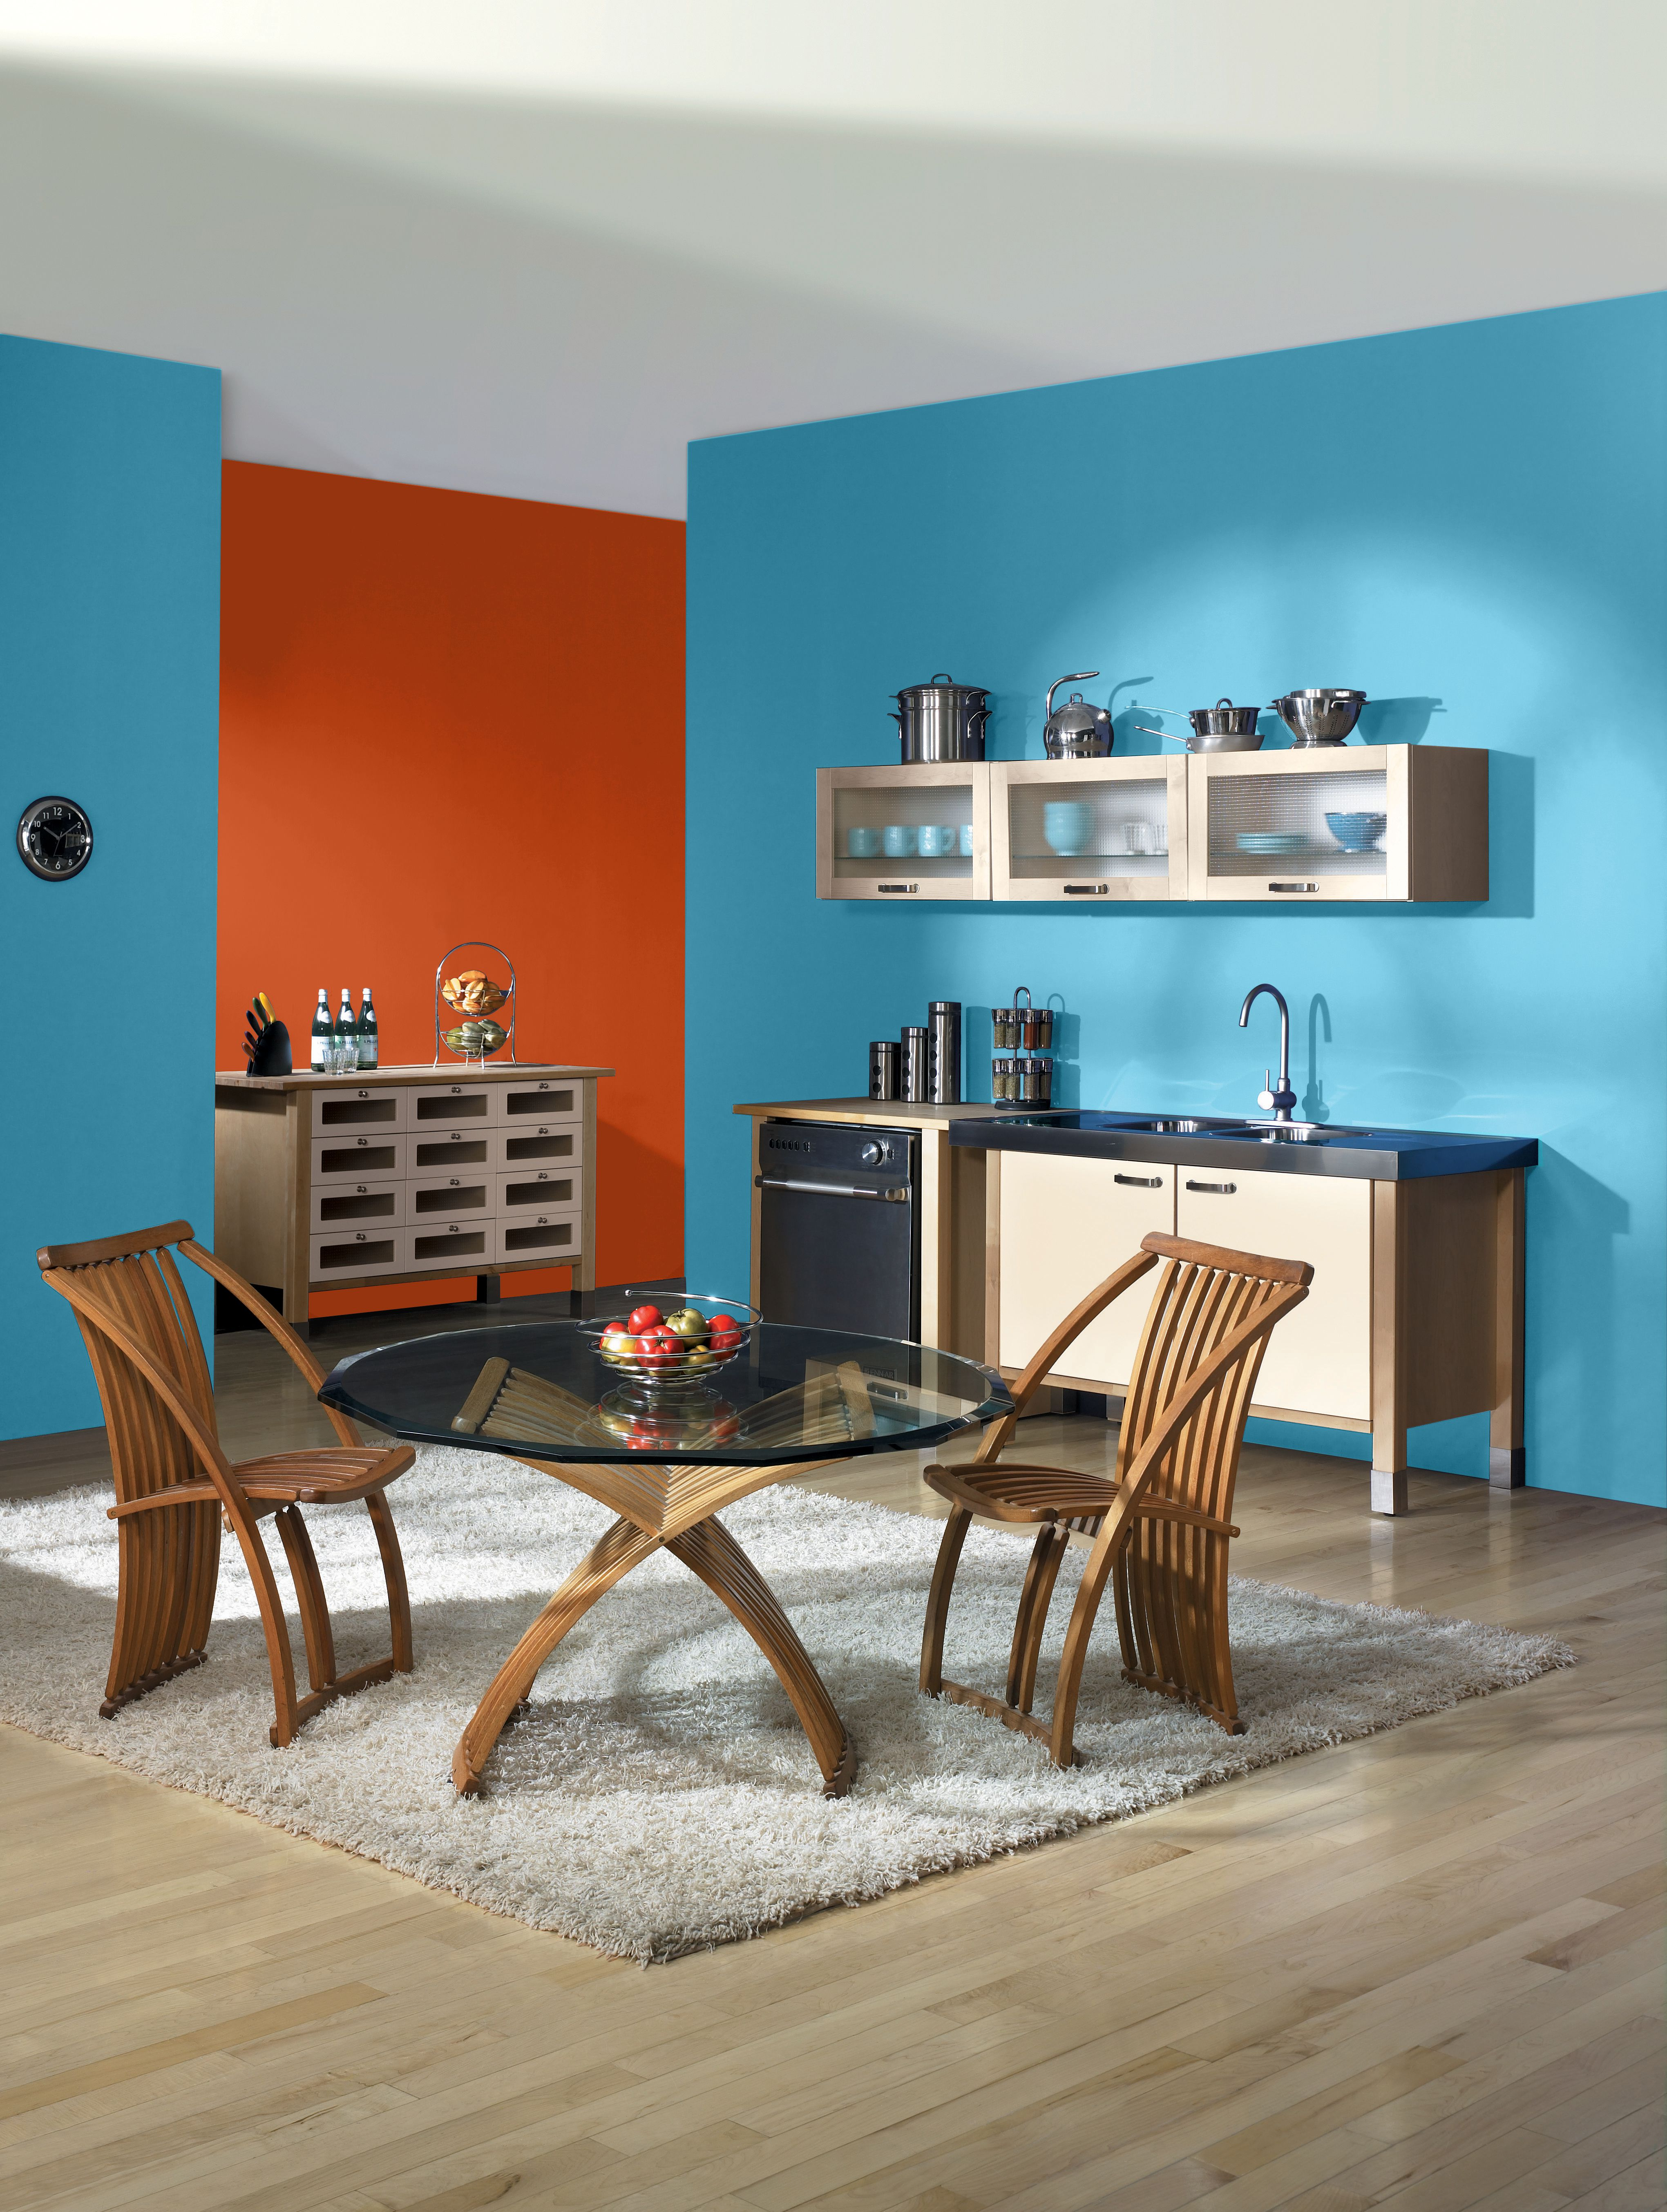 10 Easy Ways to Add Color to Your Kitchen